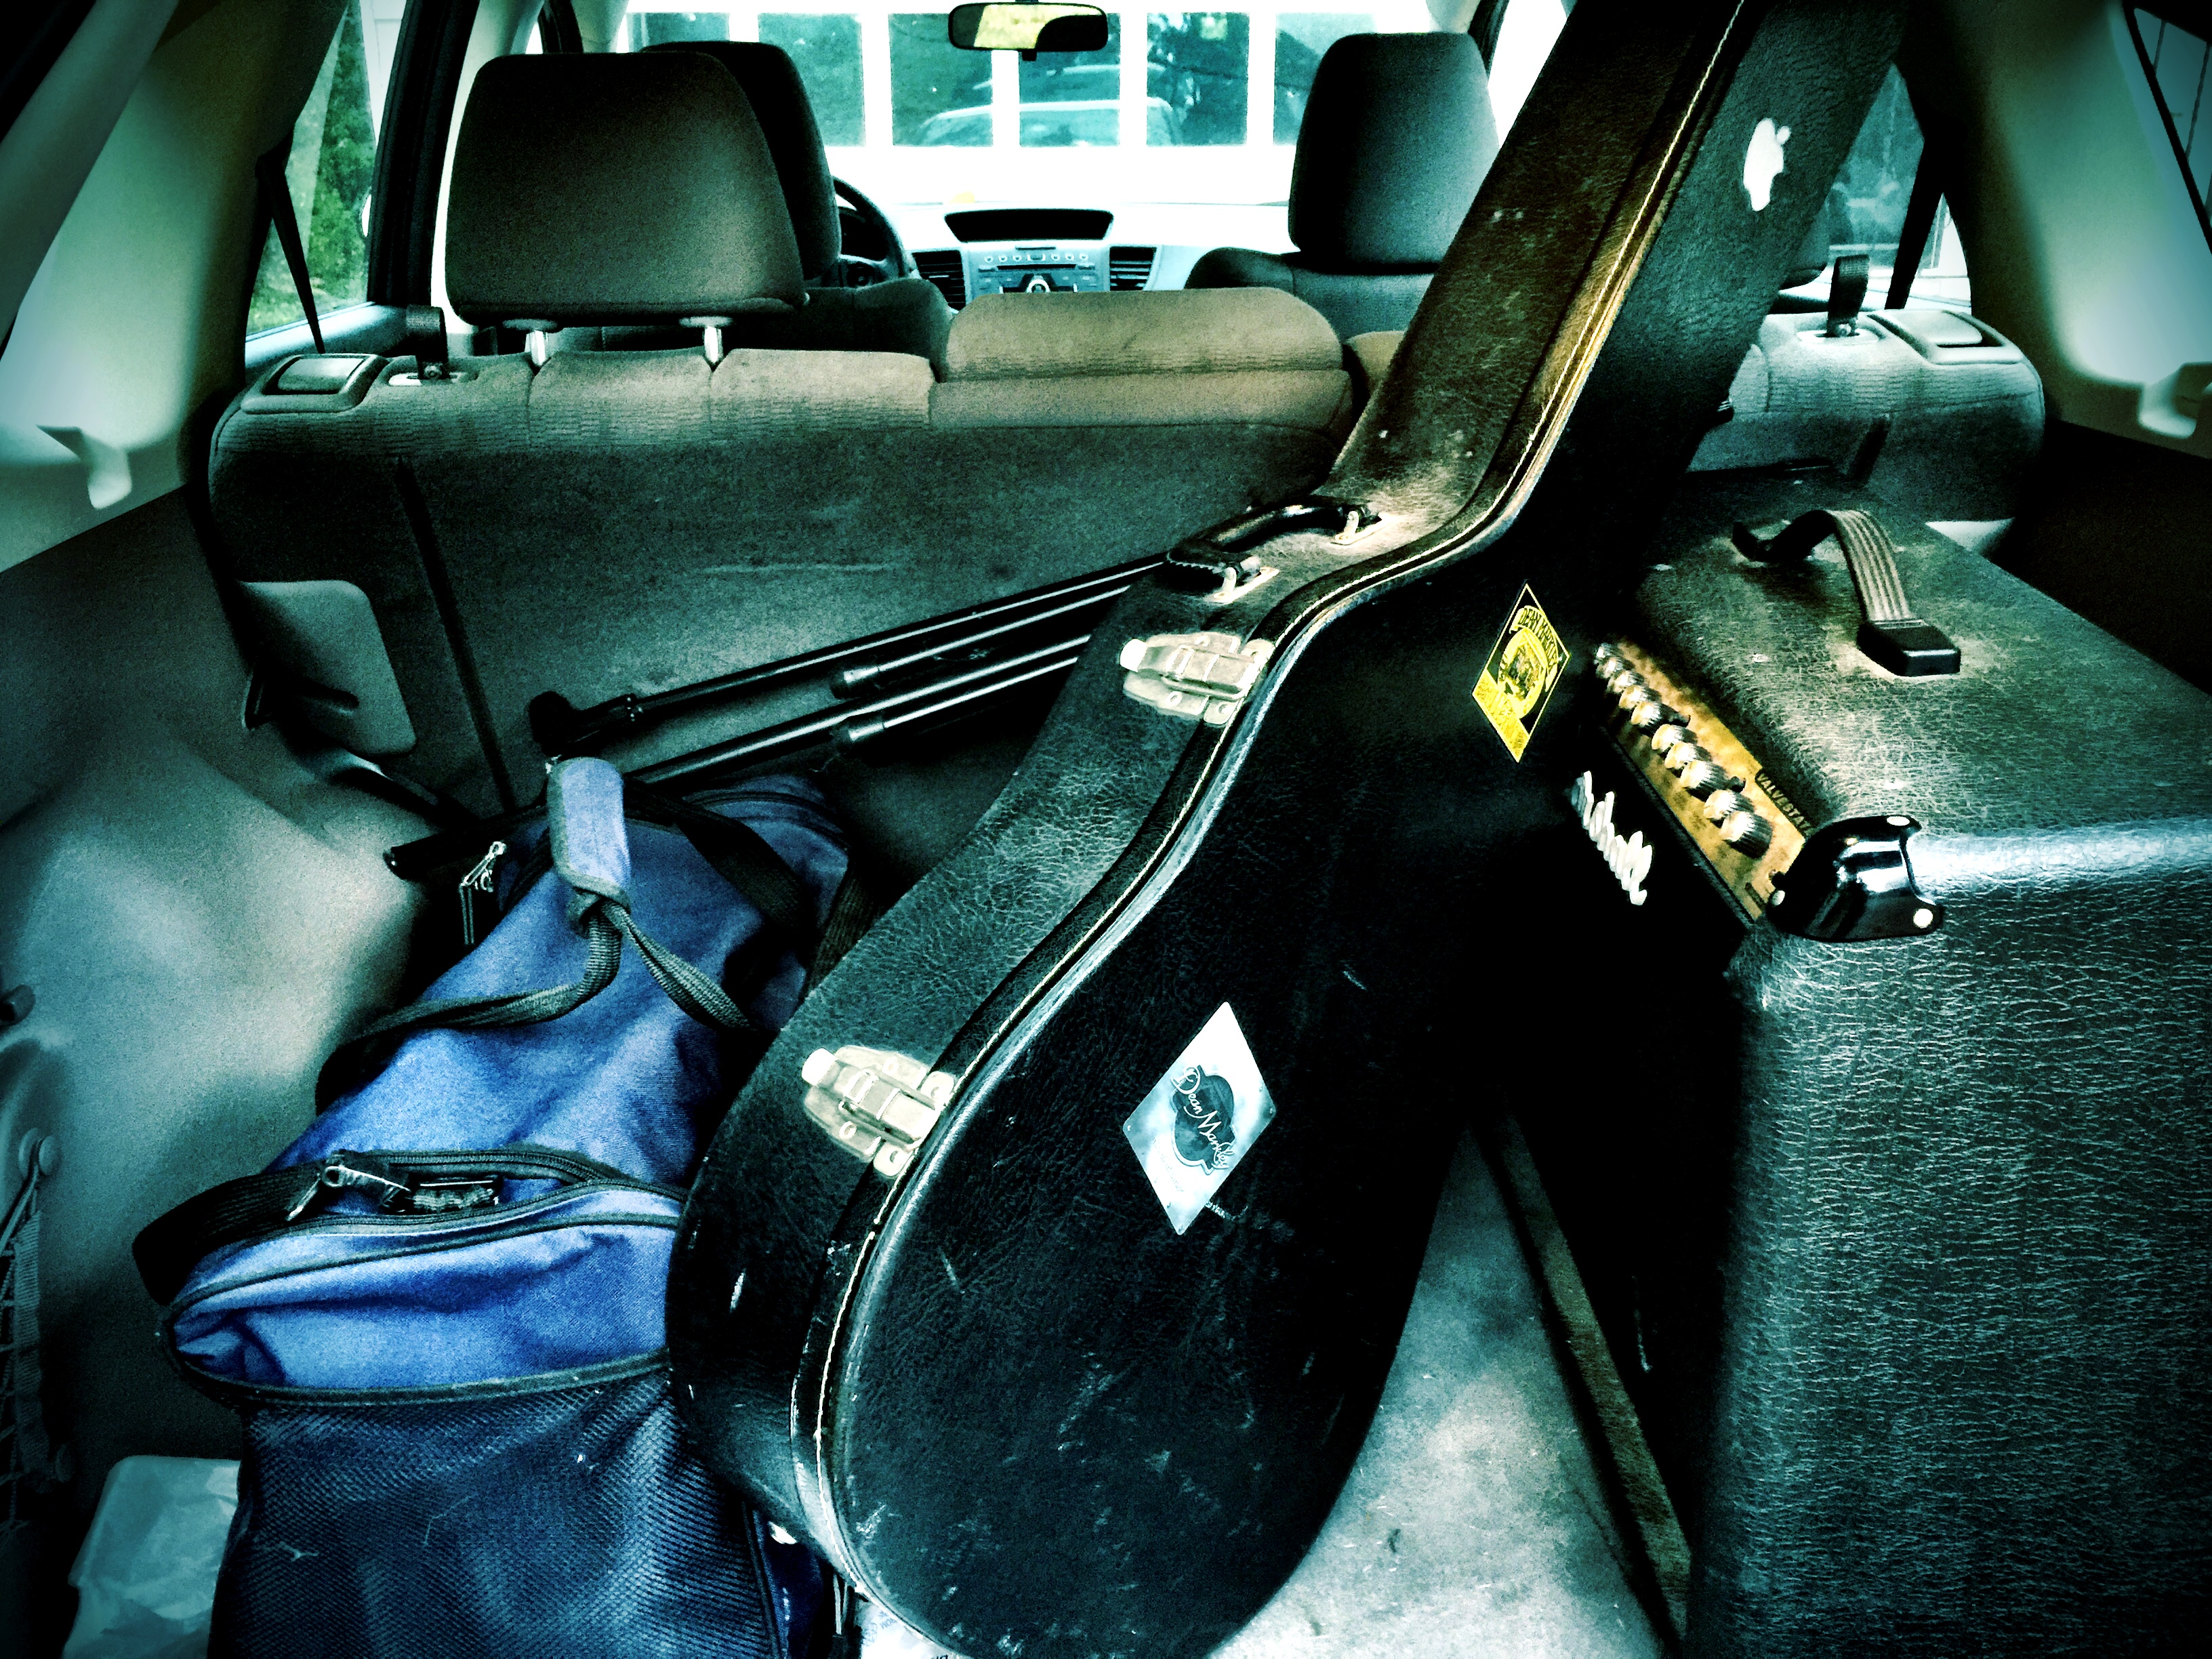 Heading to my first band practice in more than two years.